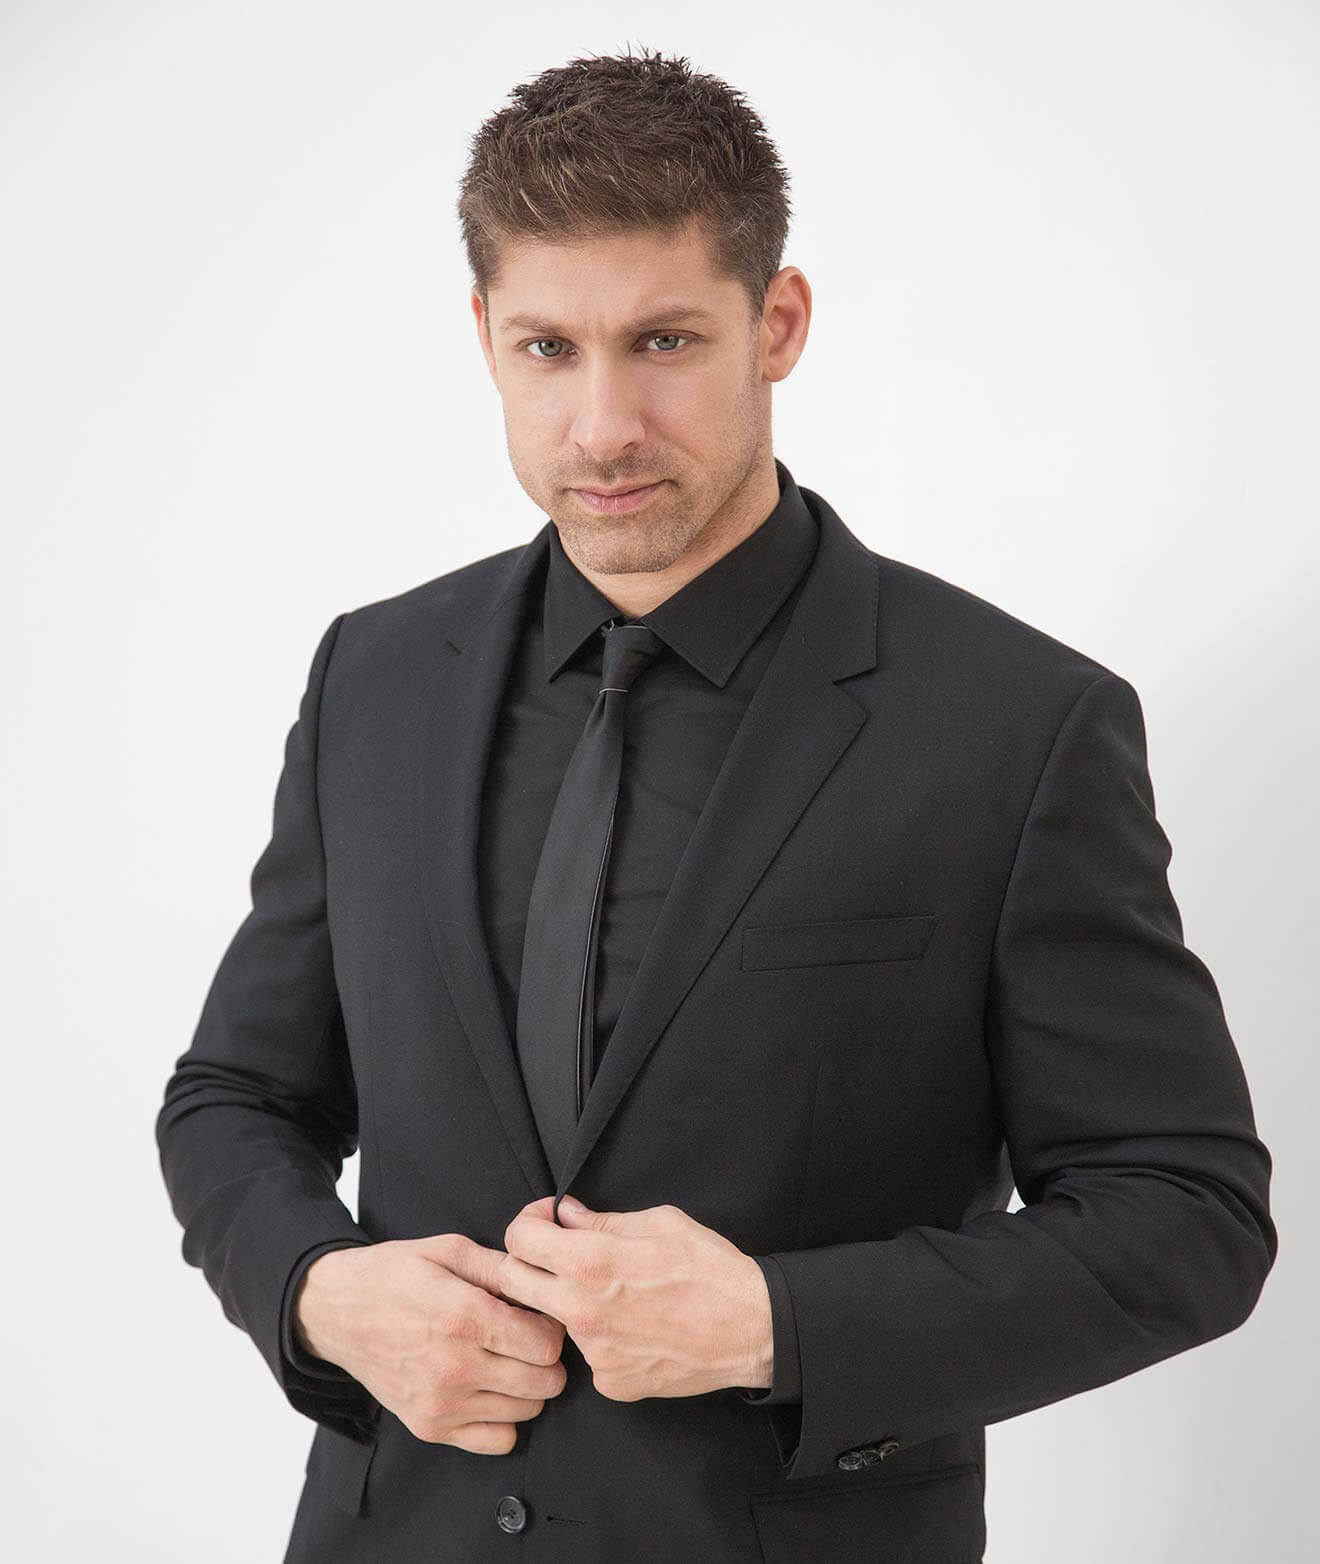 Chillin' with Alain Moussi, black suit, portrait